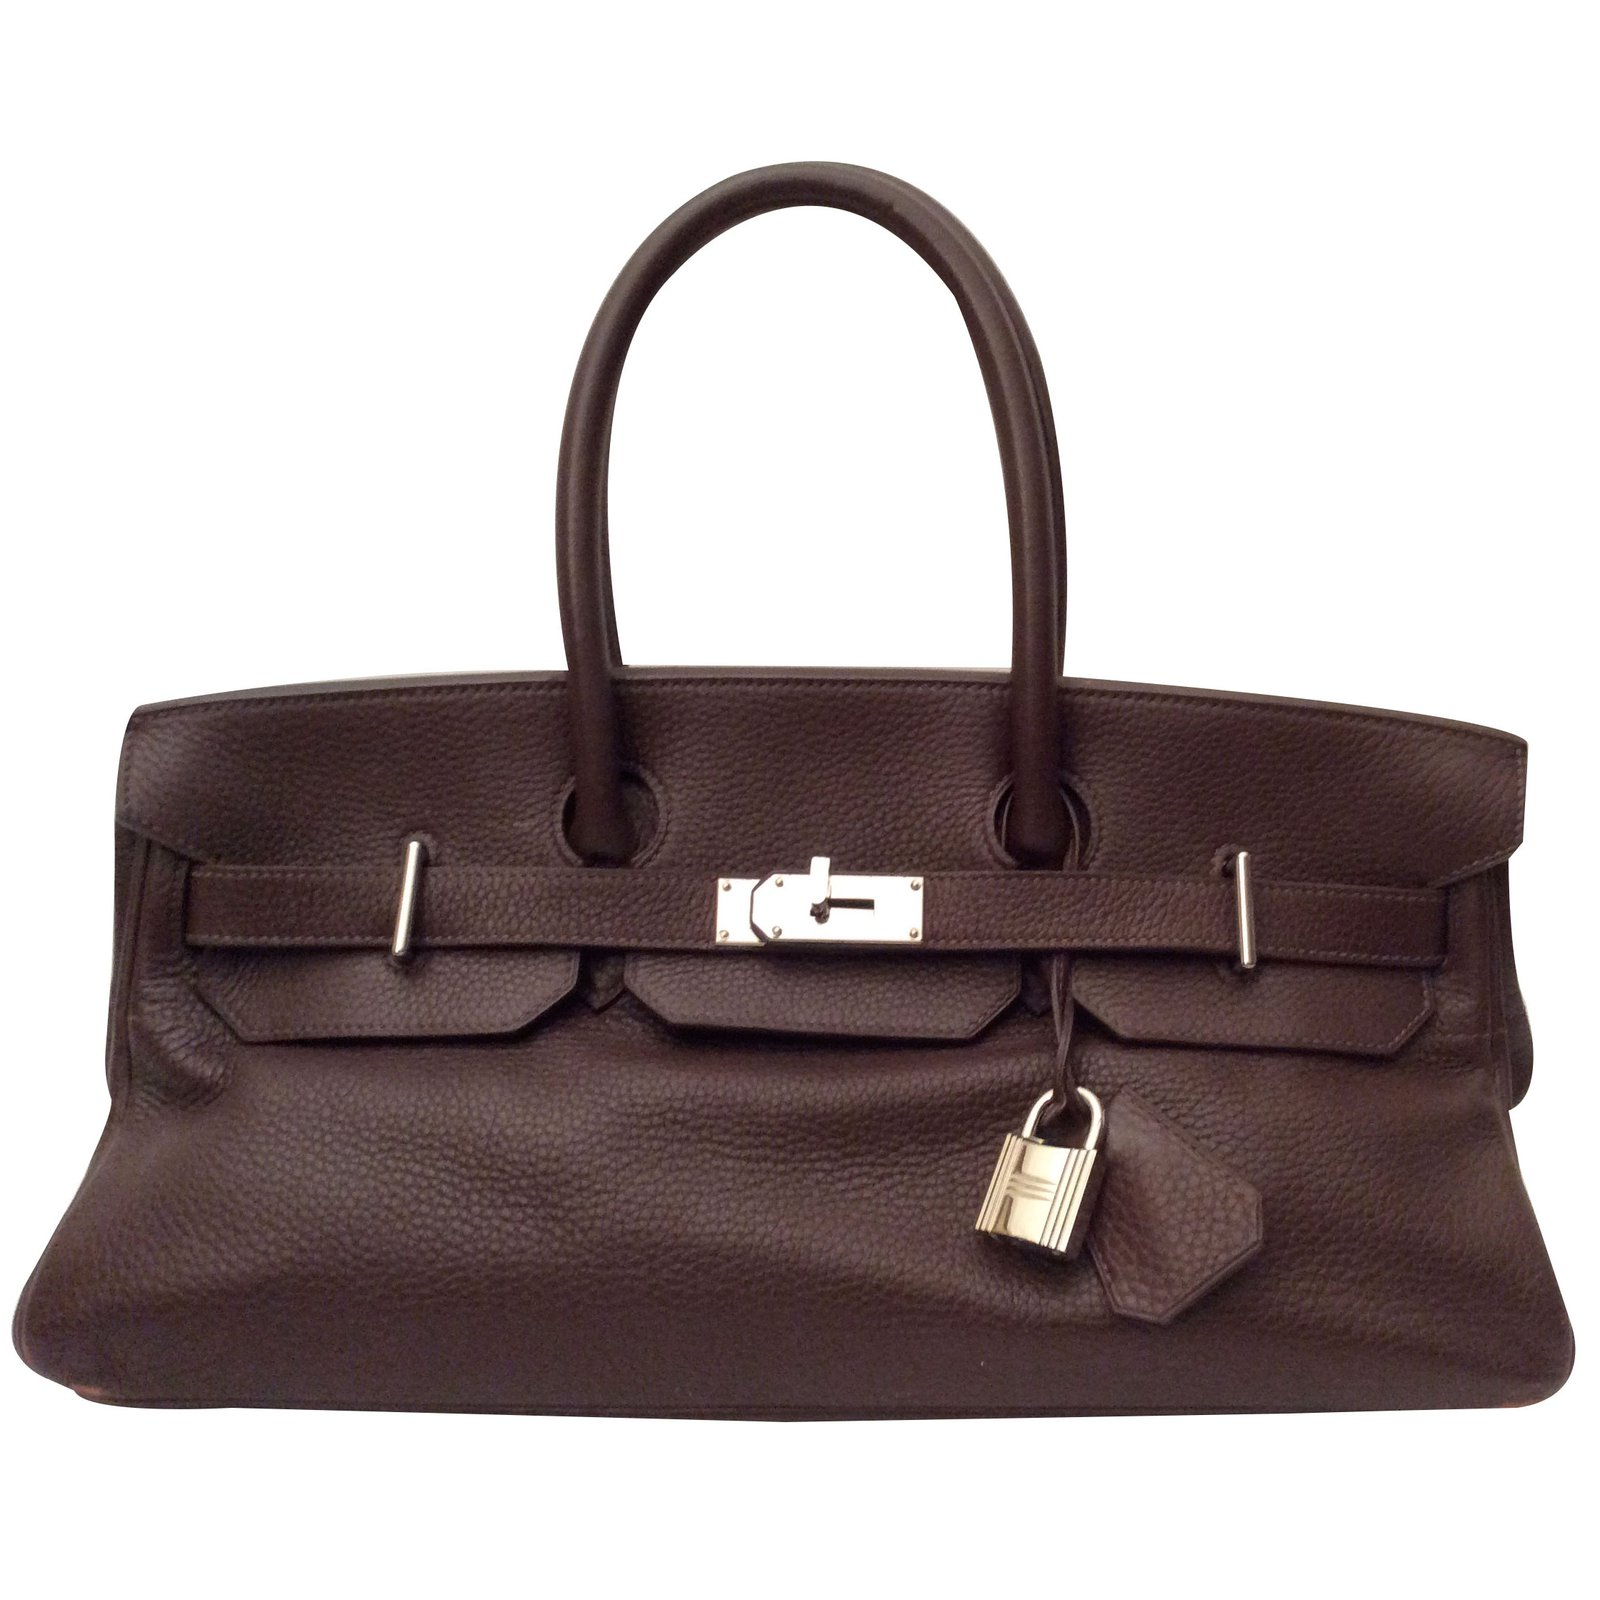 à main Hermes Birkin Shoulder en cuir marron